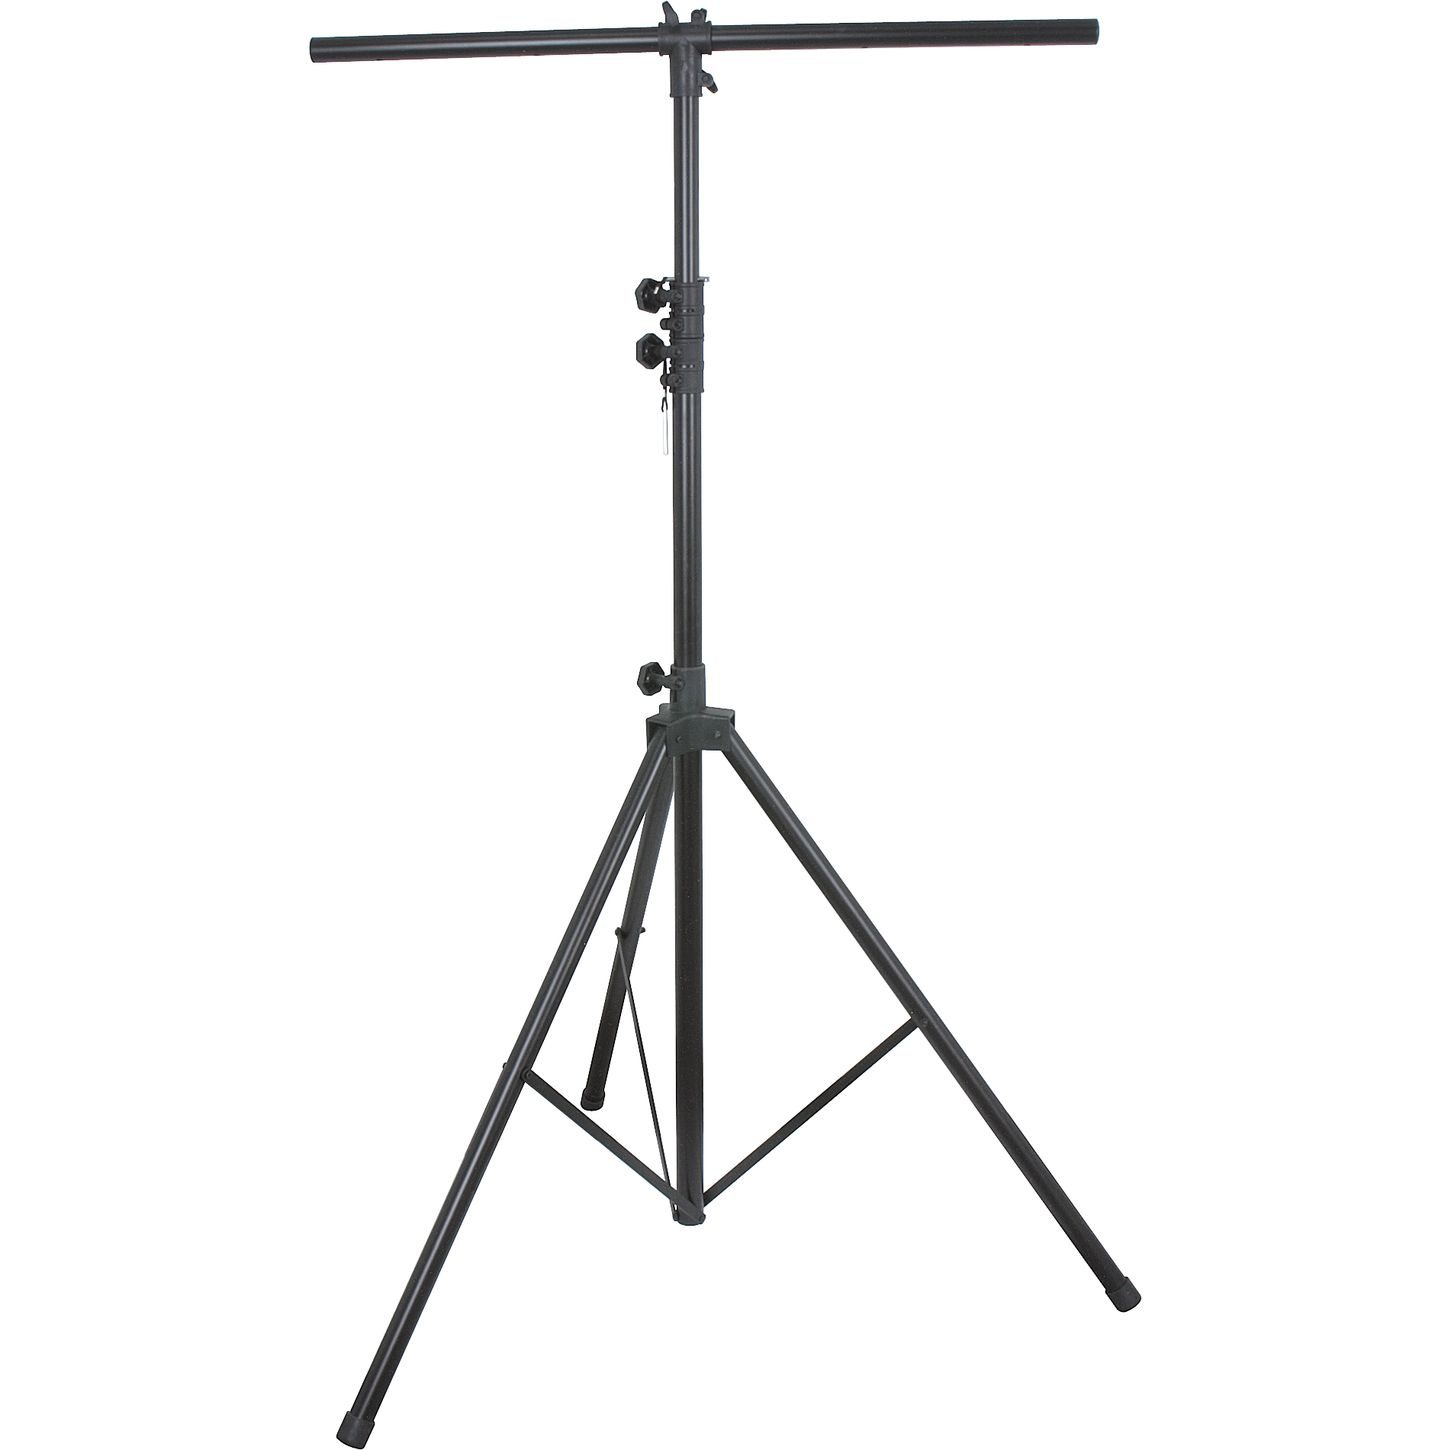 T bar lighting stand feel good events melbourne for Stand pub